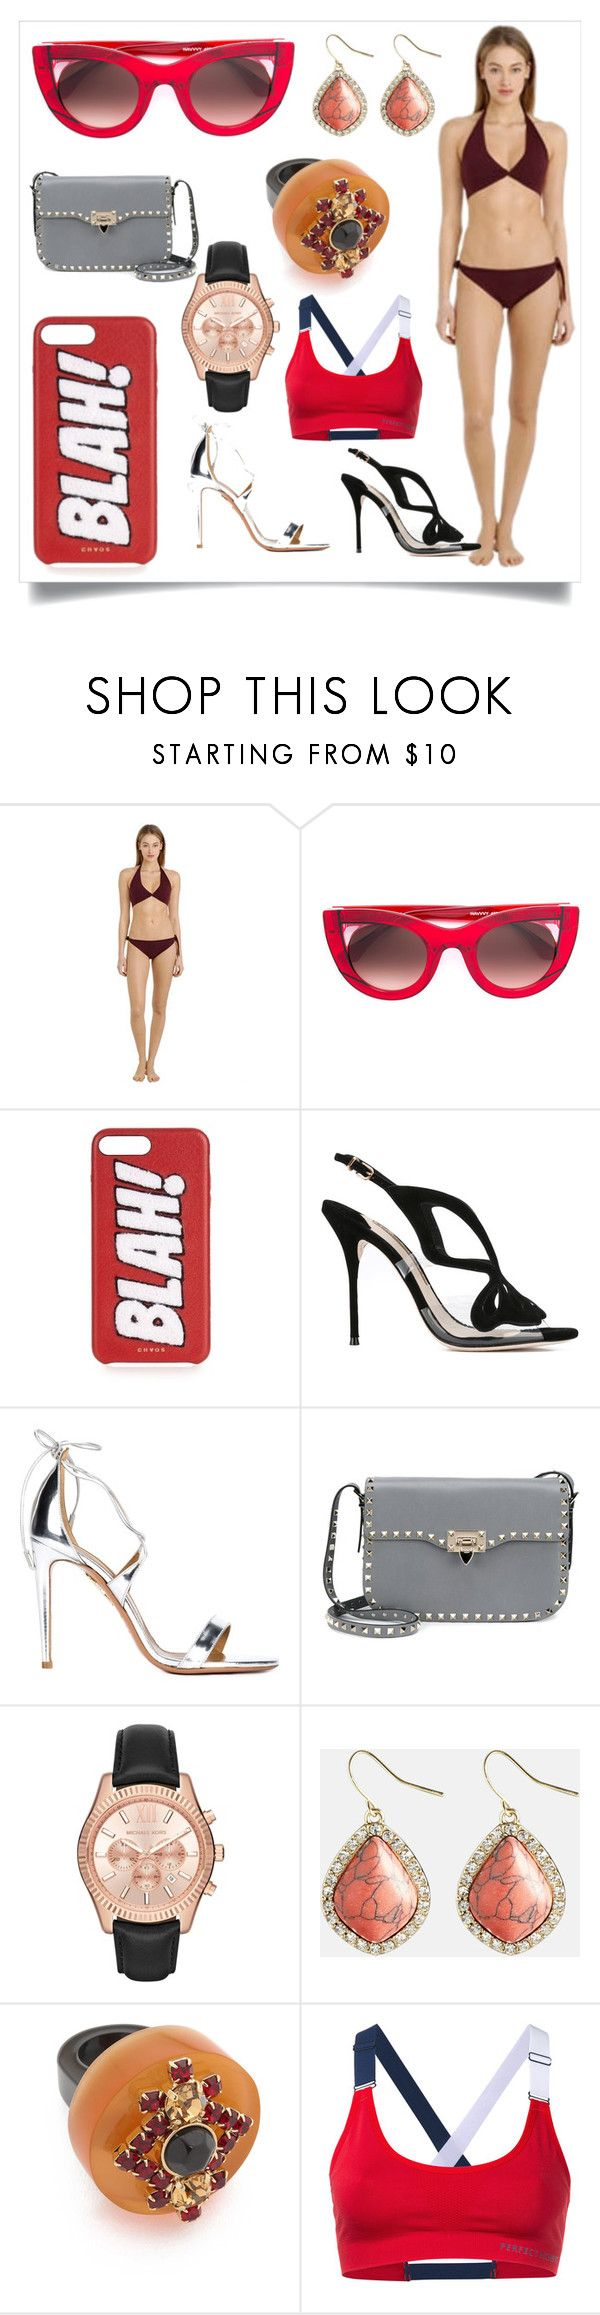 """""""Beach wear"""" by denisee-denisee ❤ liked on Polyvore featuring Isole & Vulcani, Thierry Lasry, Chaos, Sophia Webster, Aquazzura, Valentino, MICHAEL Michael Kors, Avenue, Marni and Perfect Moment"""